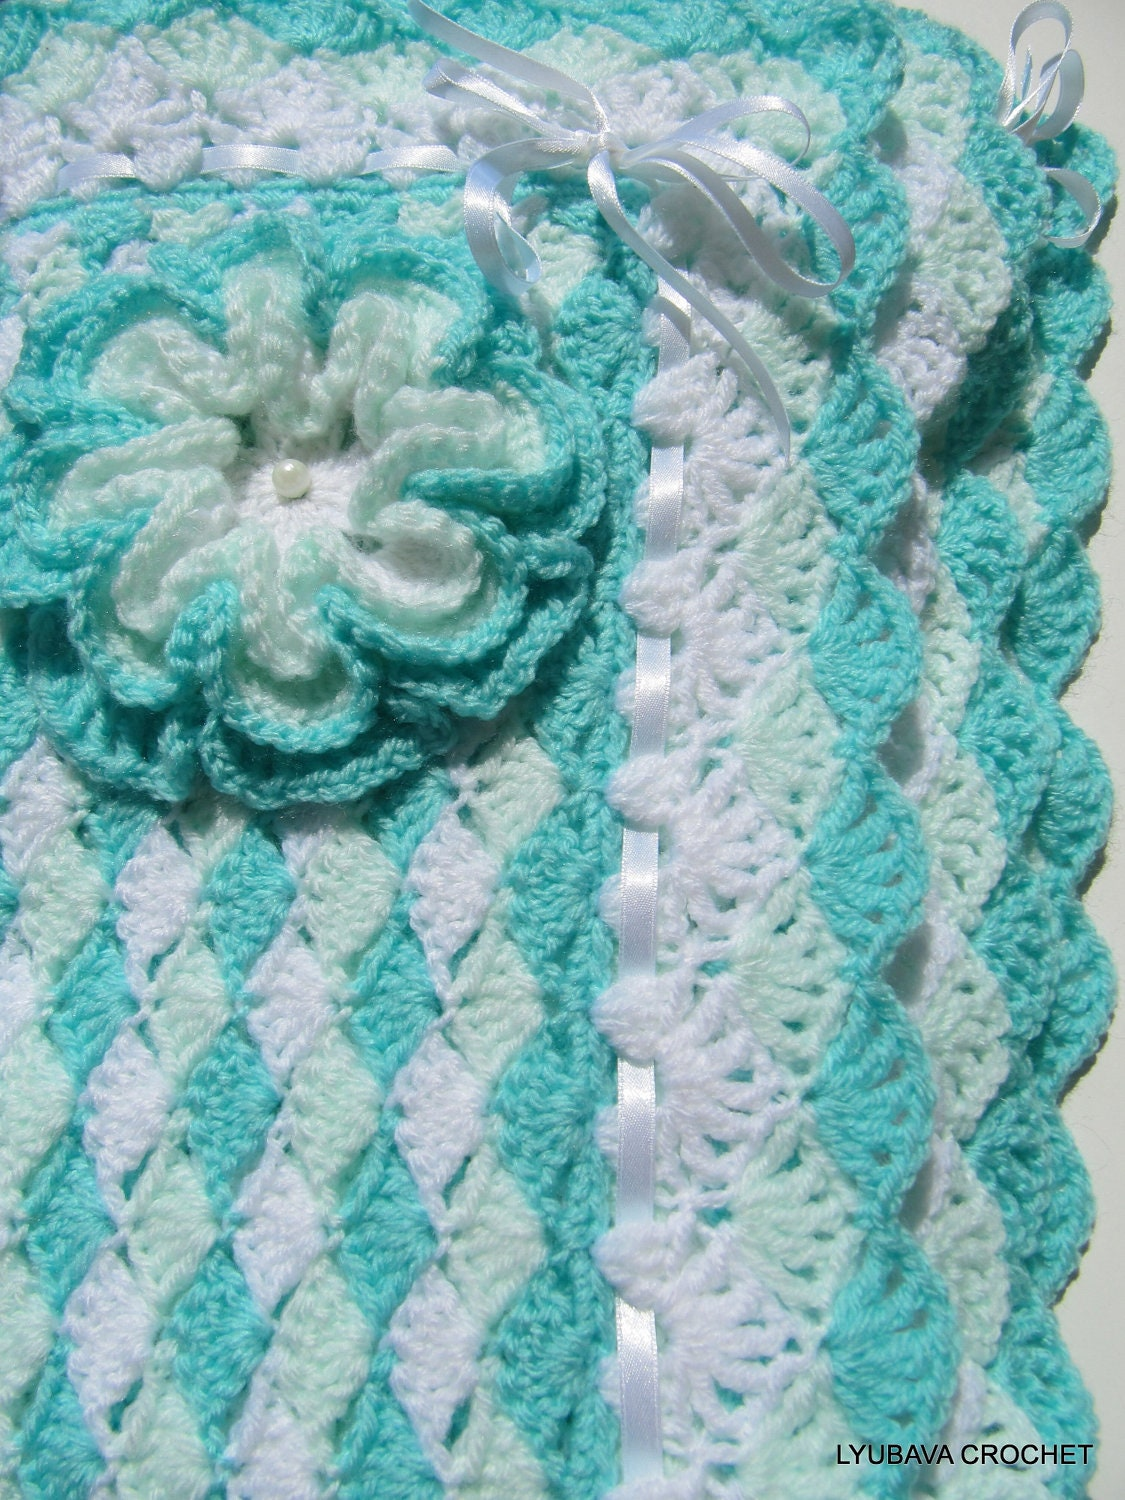 Crocheting Patterns For Baby Blankets Crochet Baby Blanket Pattern